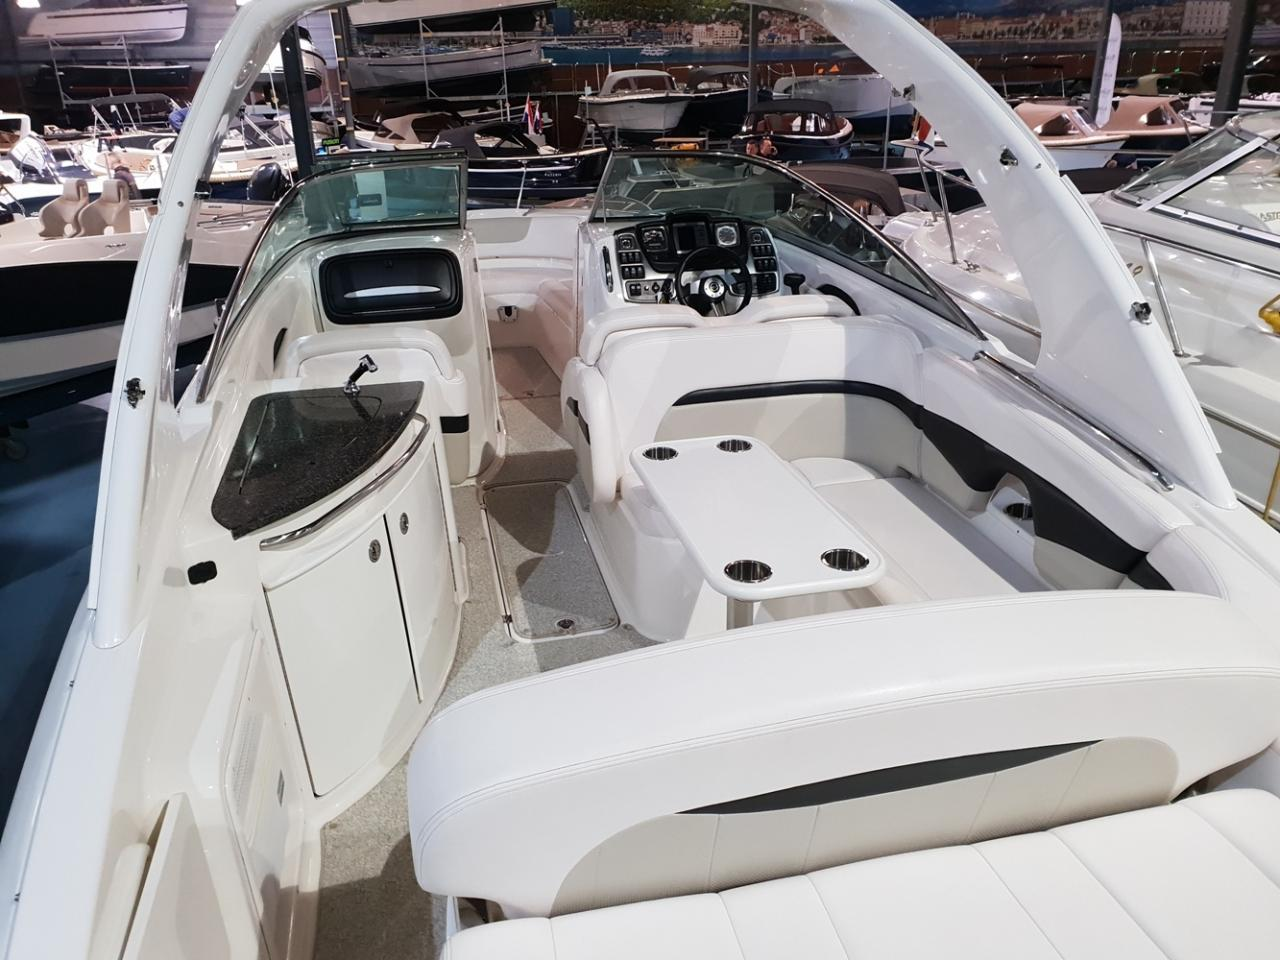 Chaparral 276 SSX met Mercruiser 496 MAG 4